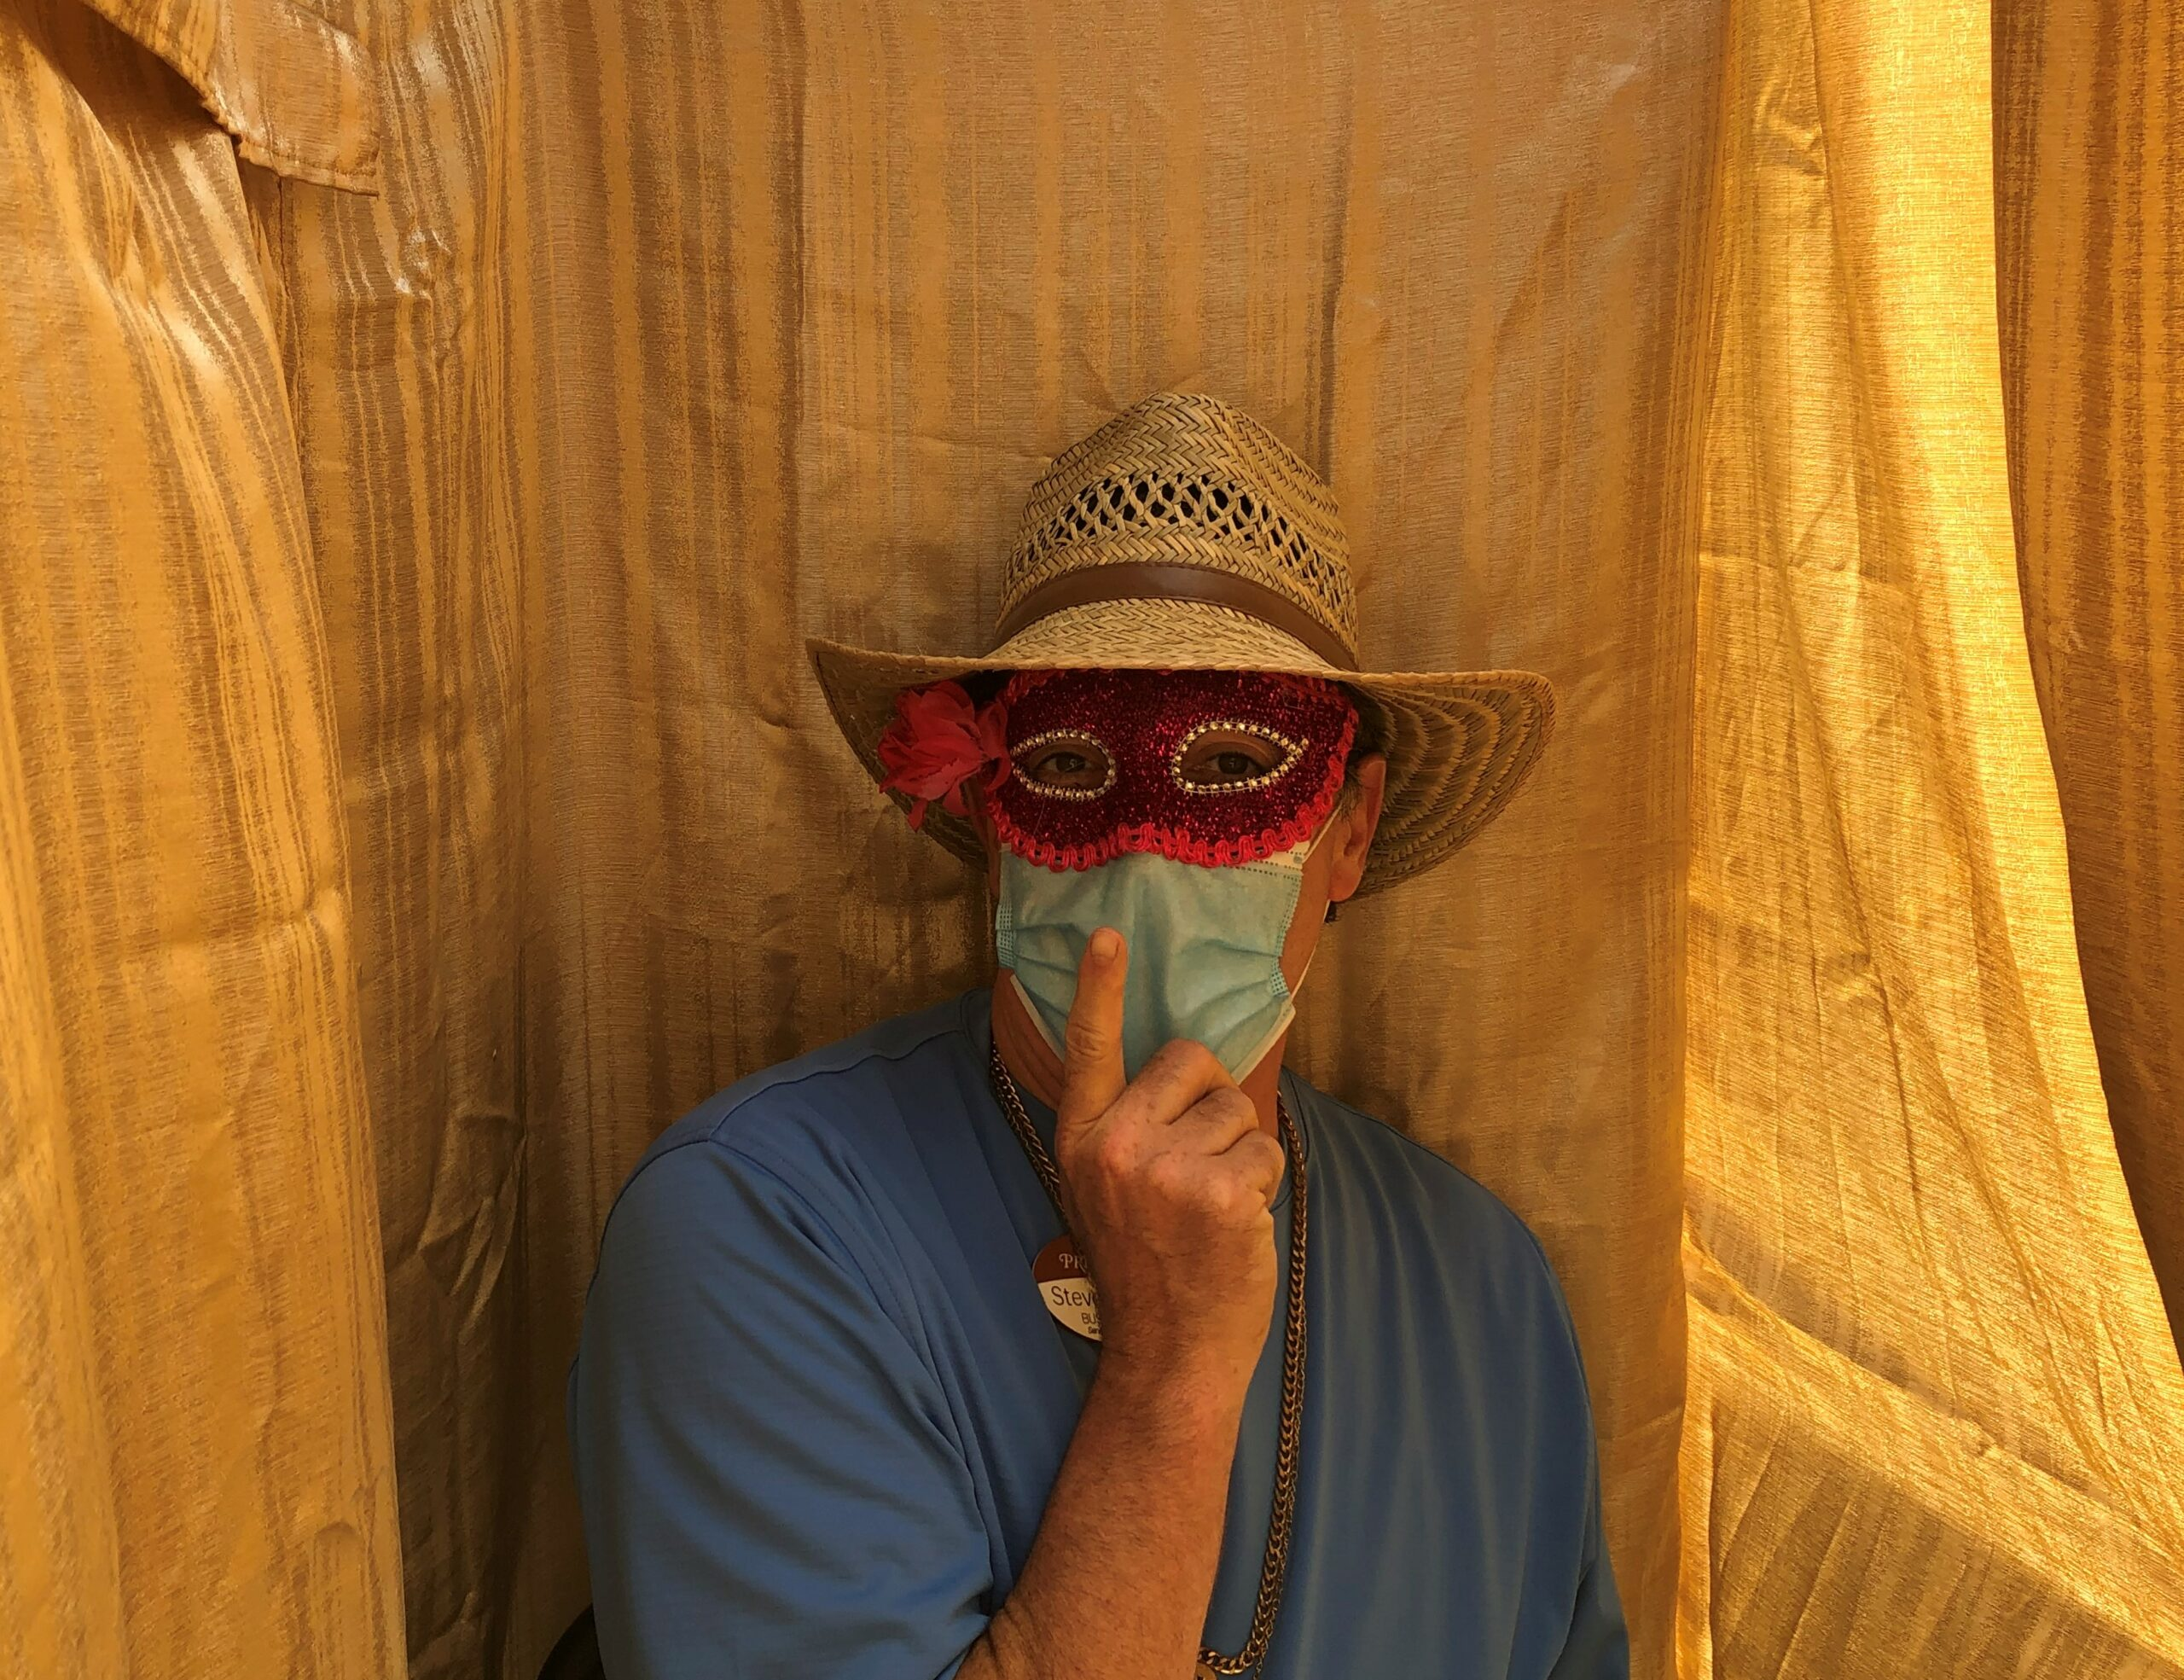 Our Life Enrichment Coordinator, Steve, gets in on the photo booth fun!